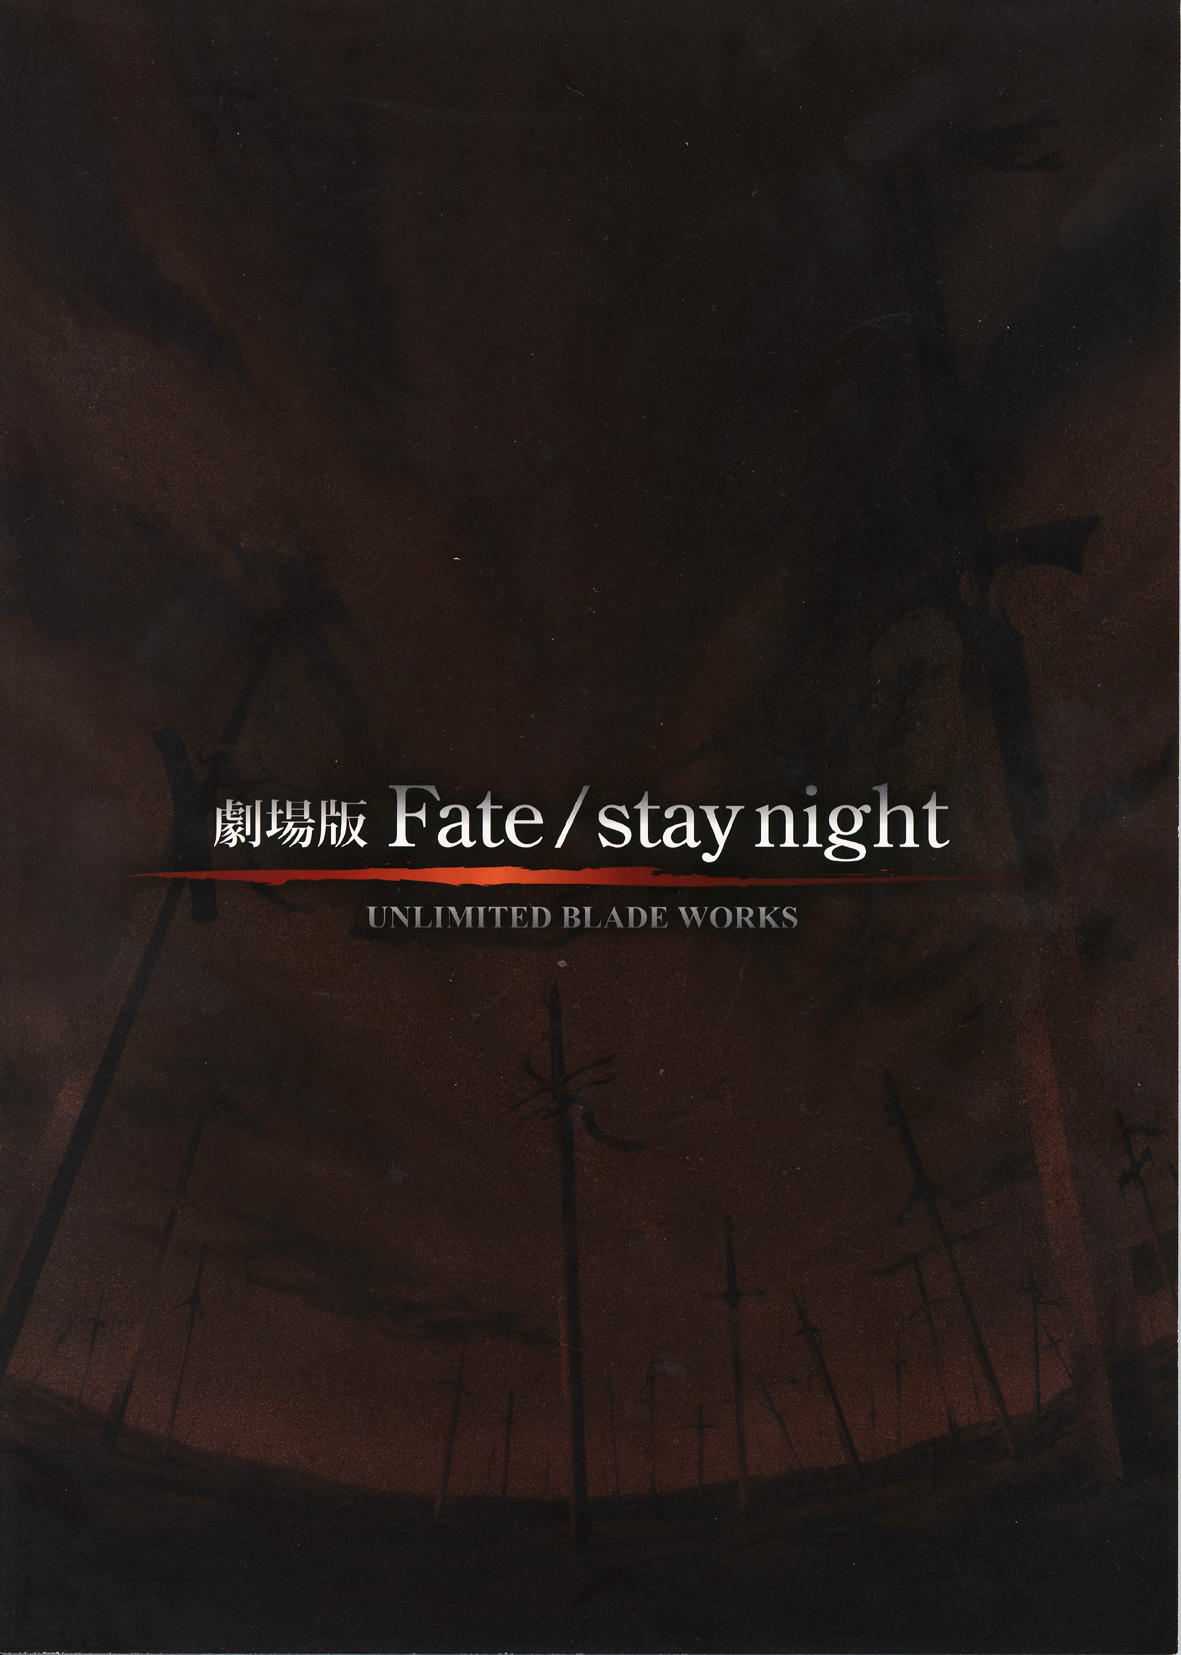 劇場版 Fate/stay night - UNLIMITED BLADE WORKS -